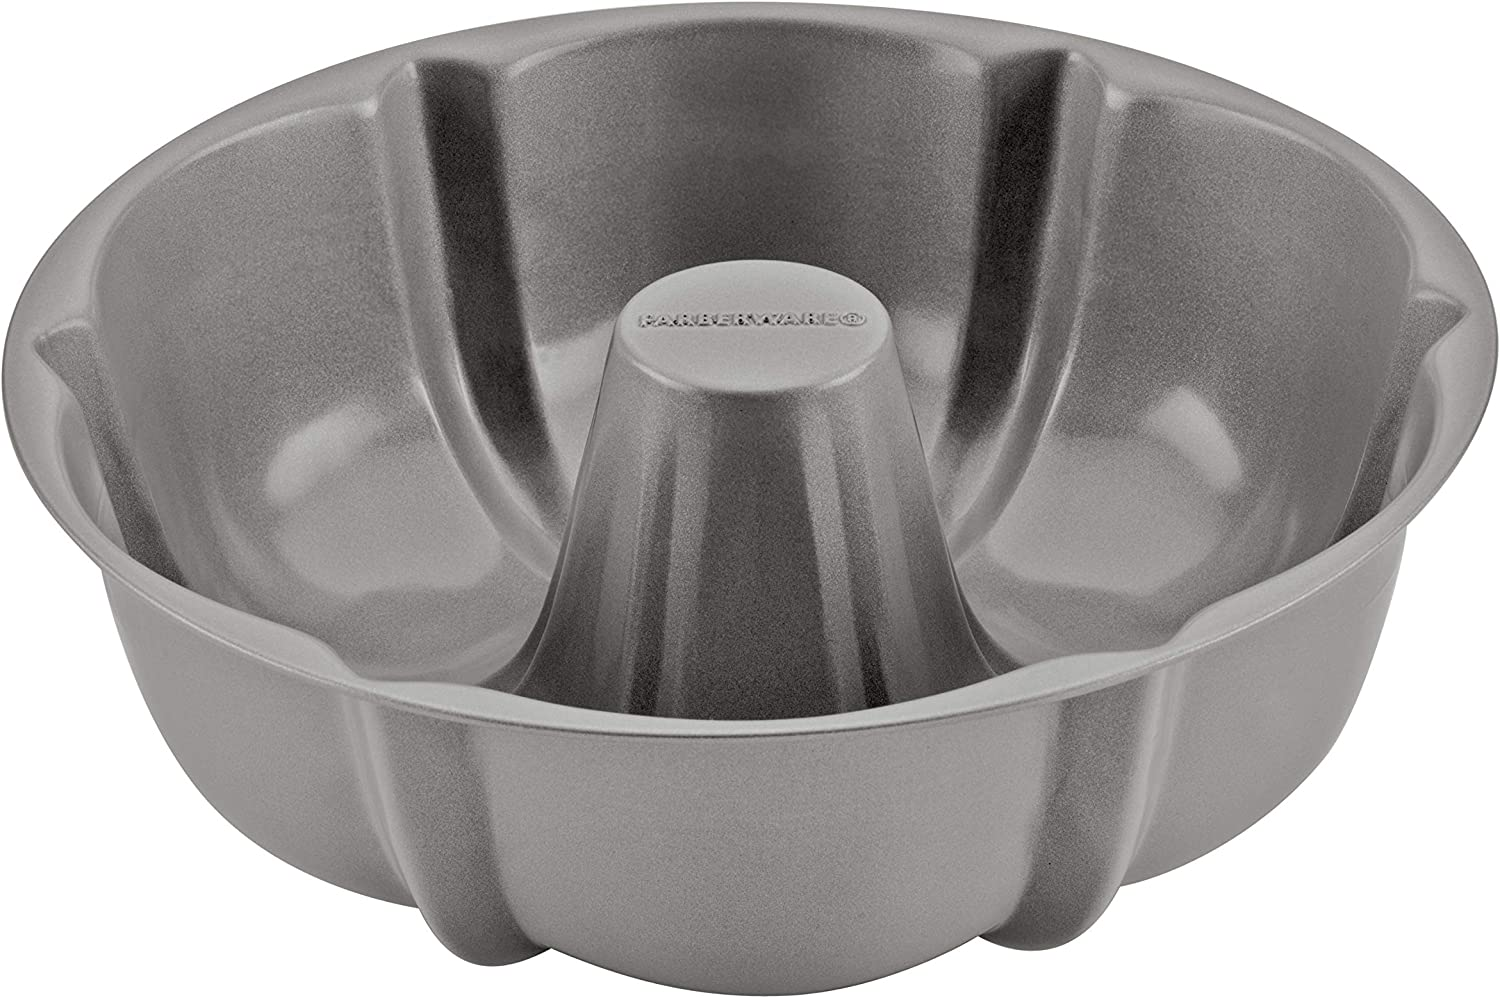 Farberware Fluted Mold Pan/Nonstick Pressure Cooker Bakeware, Round, 8.25 Inch, Gray